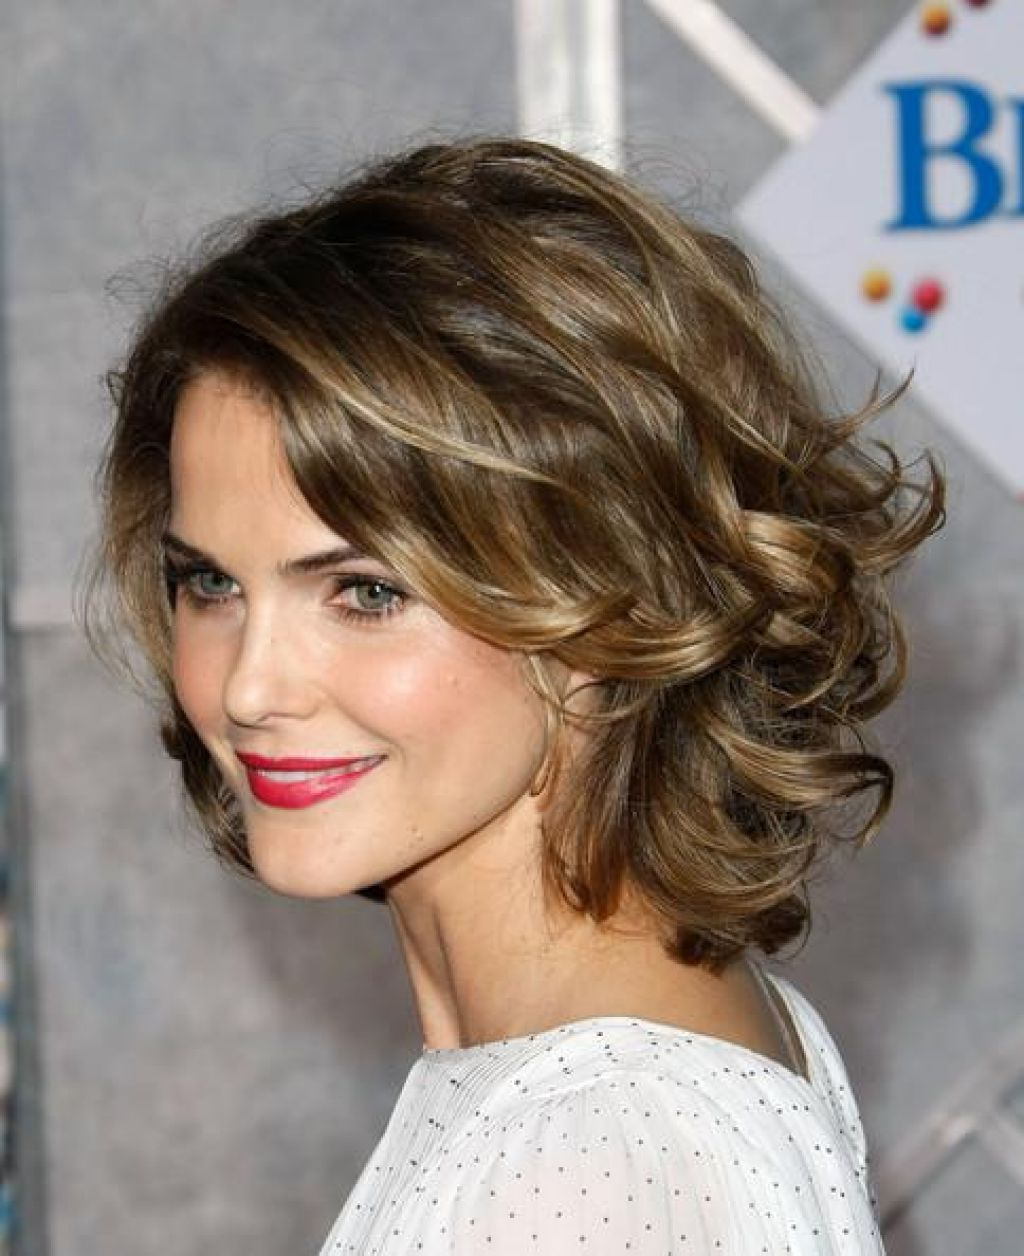 19 Short To Medium Cuts For Curly And Wavy Hair 2018 (Gallery 15 of 20)